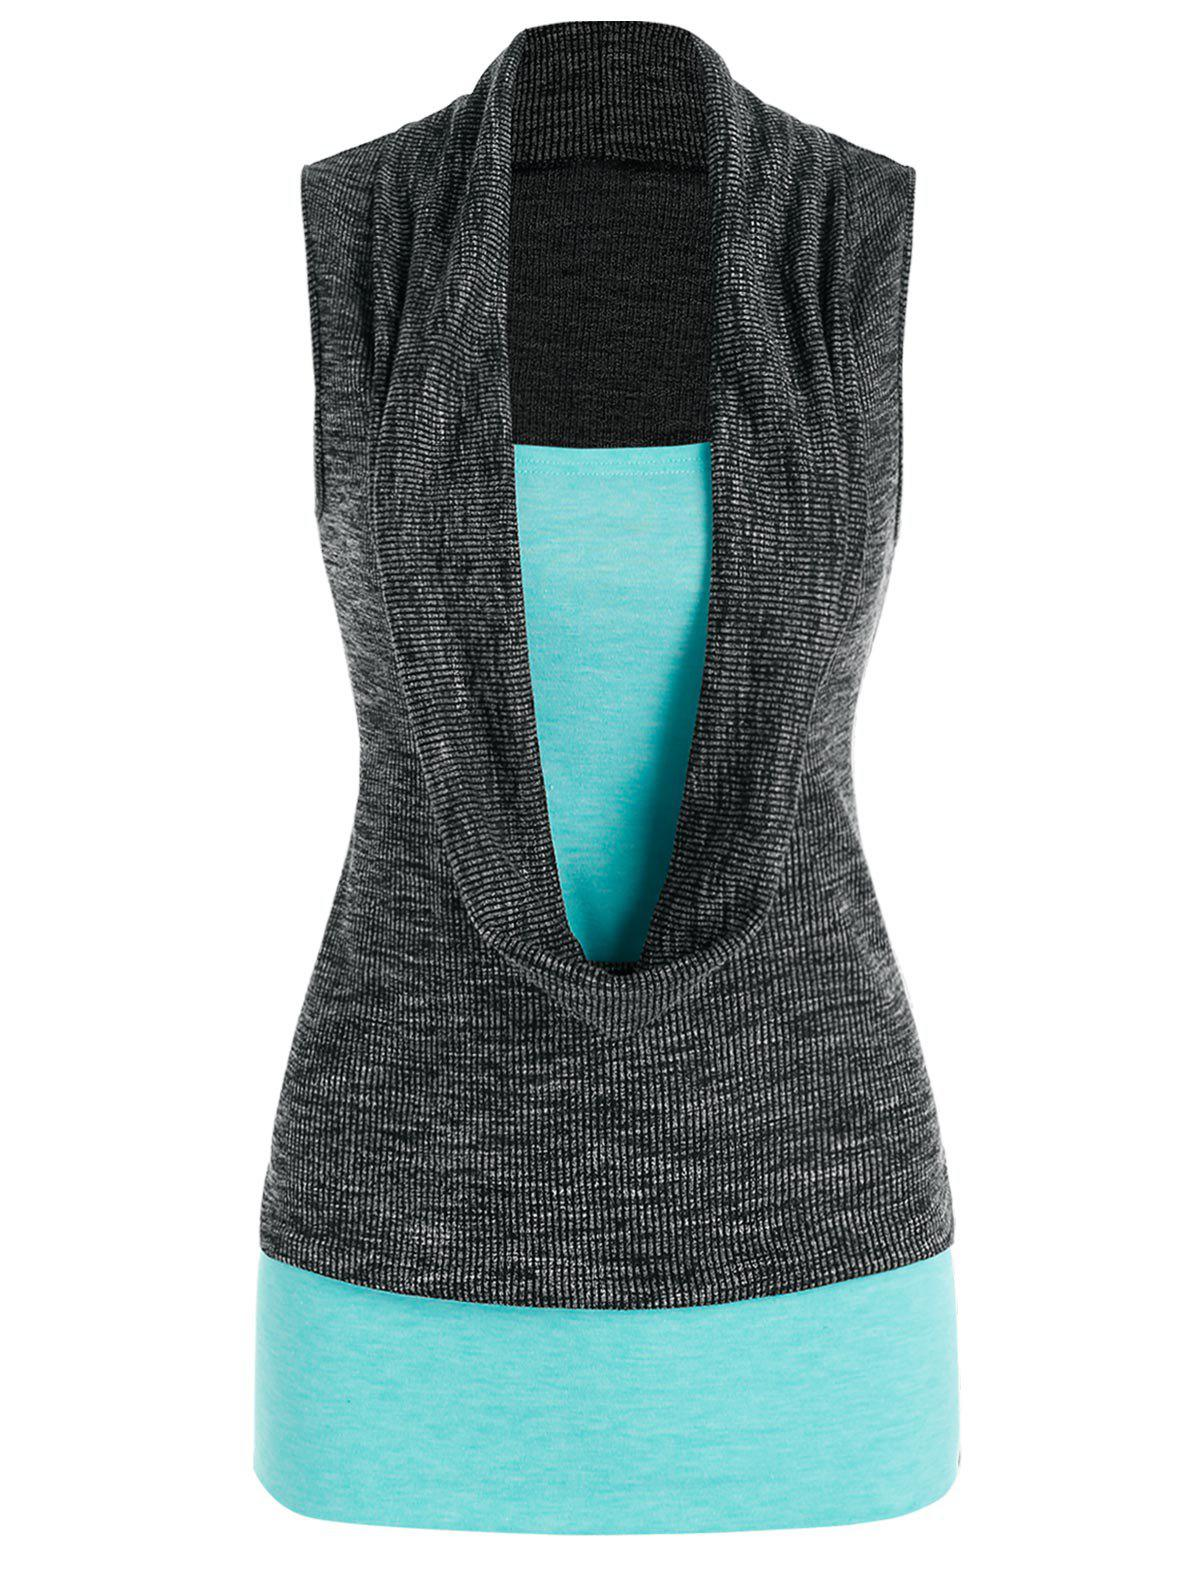 Heathered Cowl Front 2 in 1 Tank Top - multicolor A XL